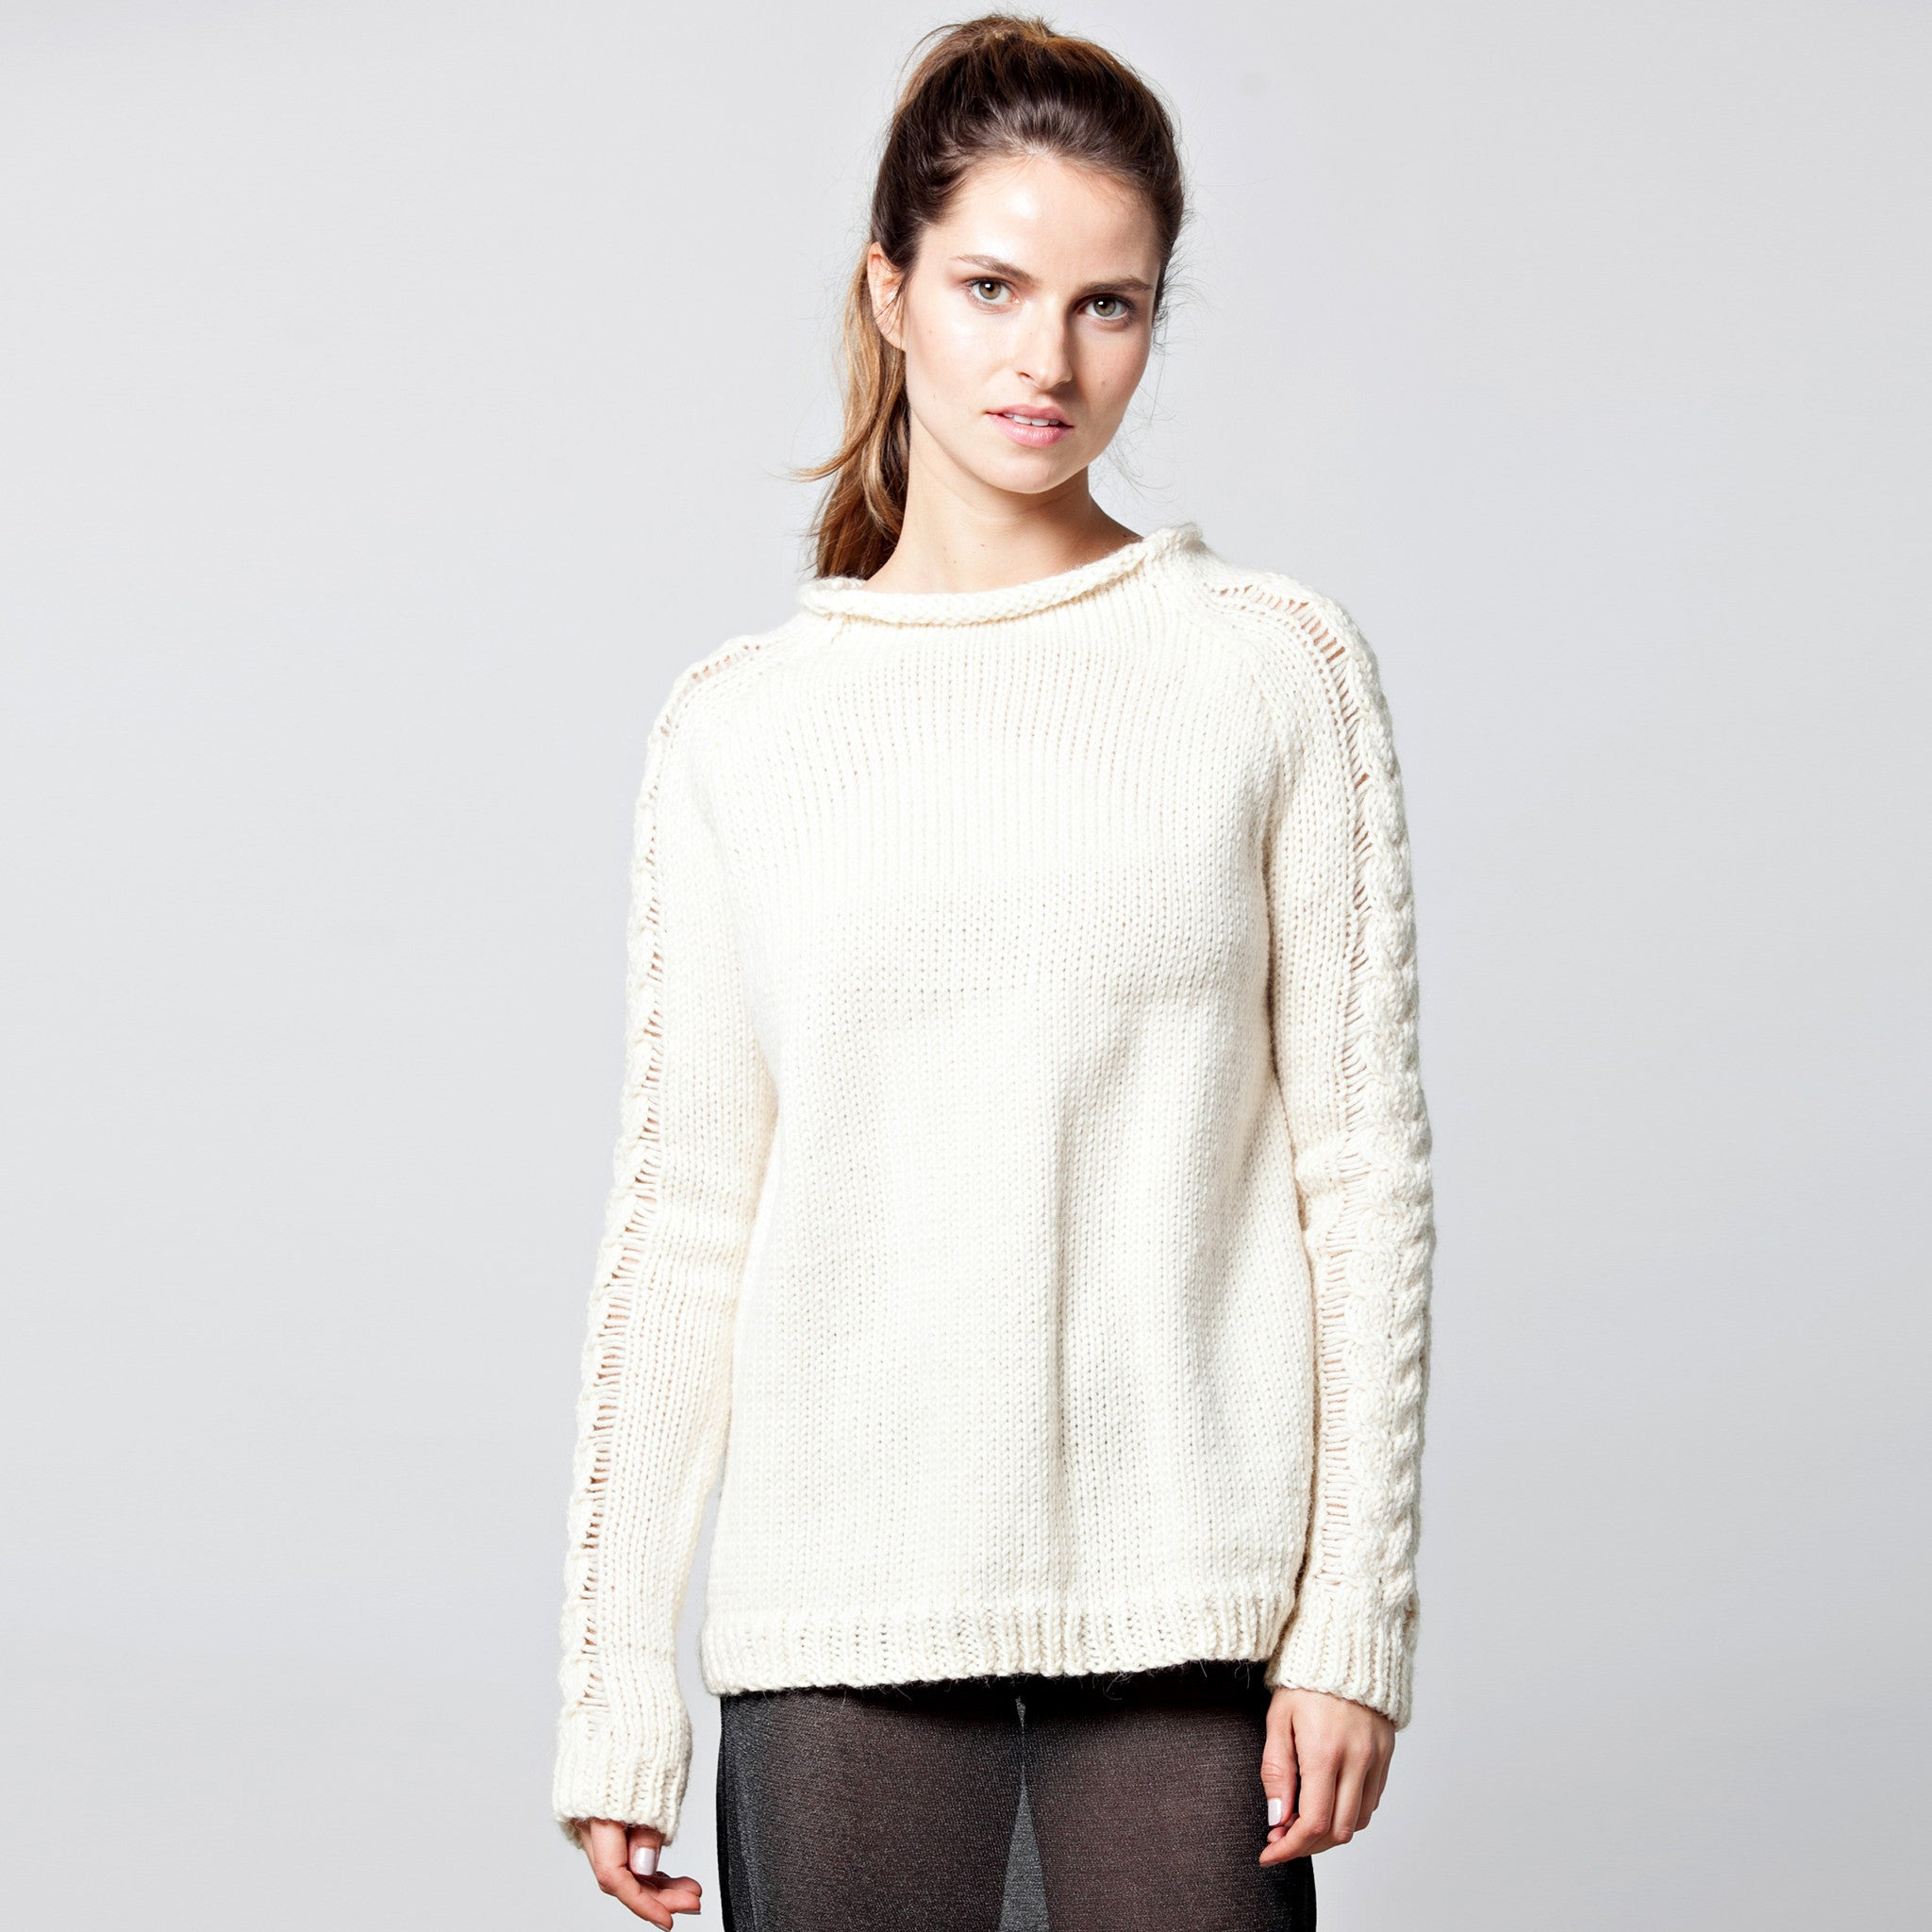 Raglan alpaca sweater - DuendeFashion  - 5